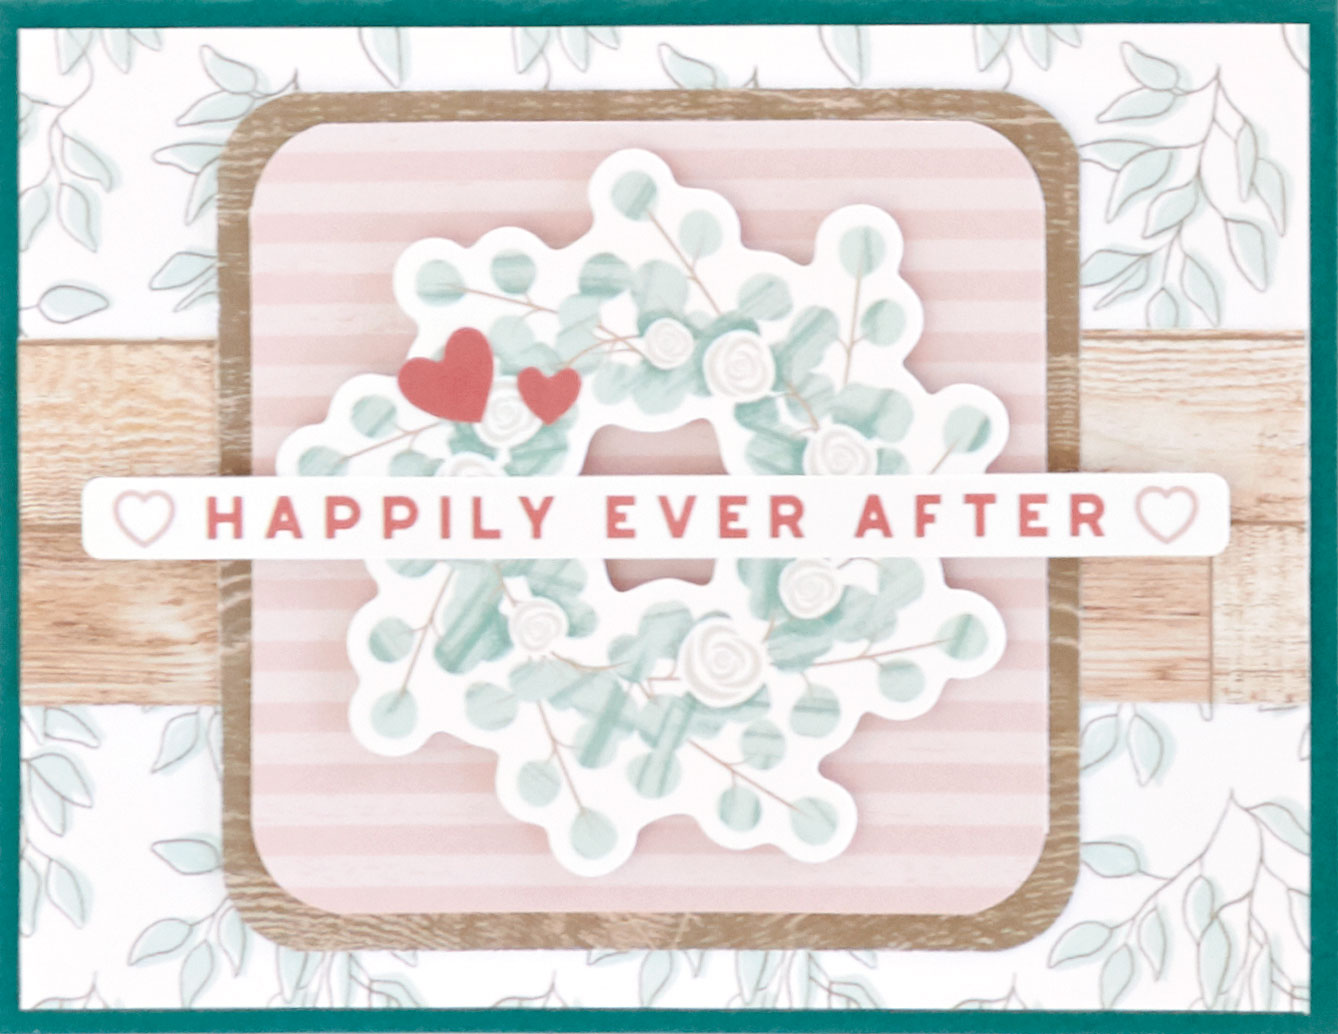 EverAfter_Card (2)